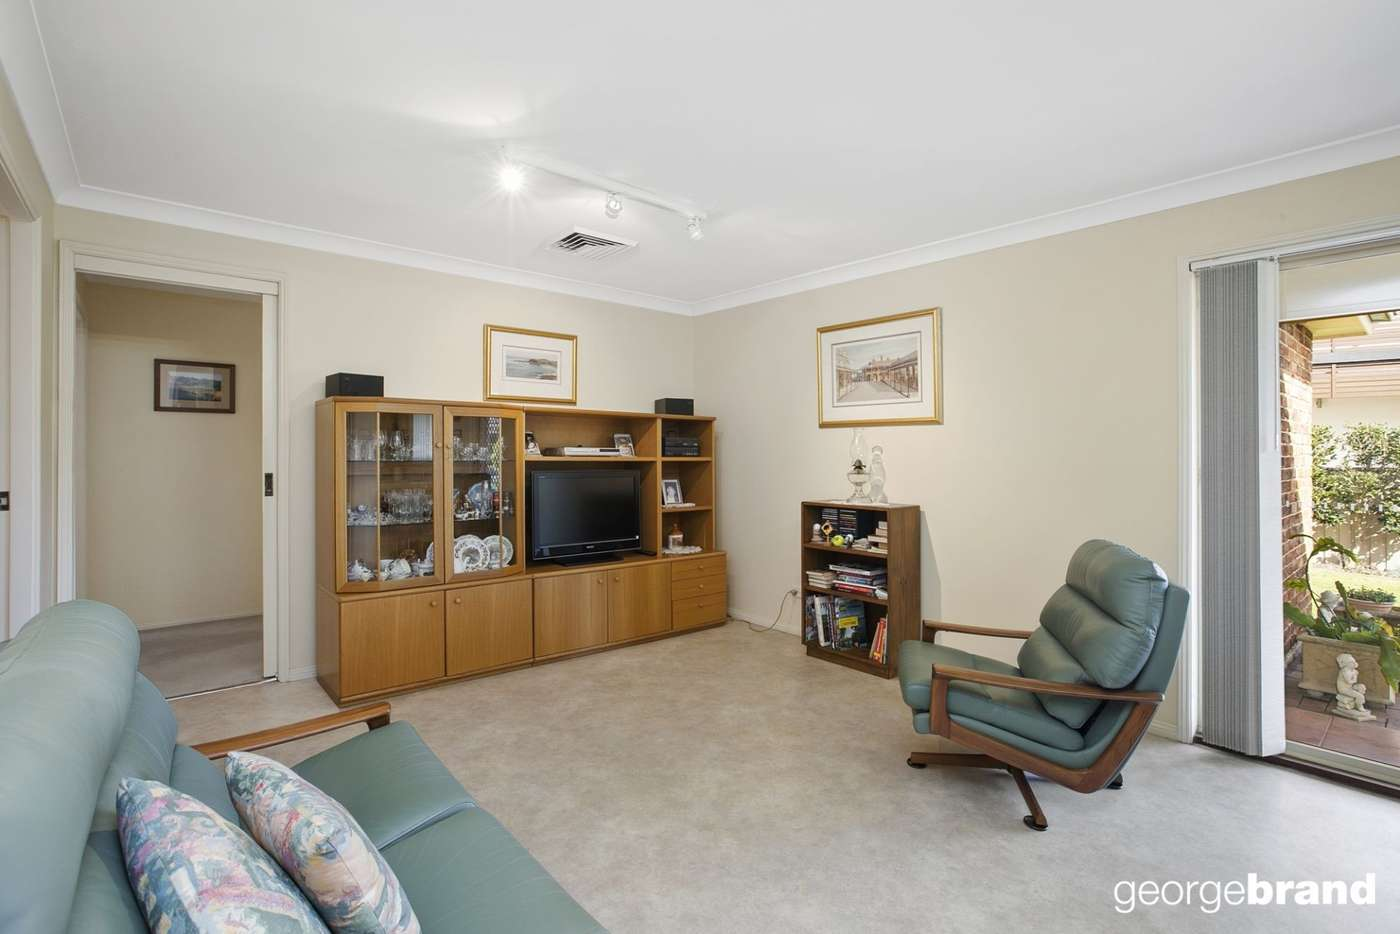 Sixth view of Homely house listing, 2 Seabreeze Avenue, Kincumber NSW 2251